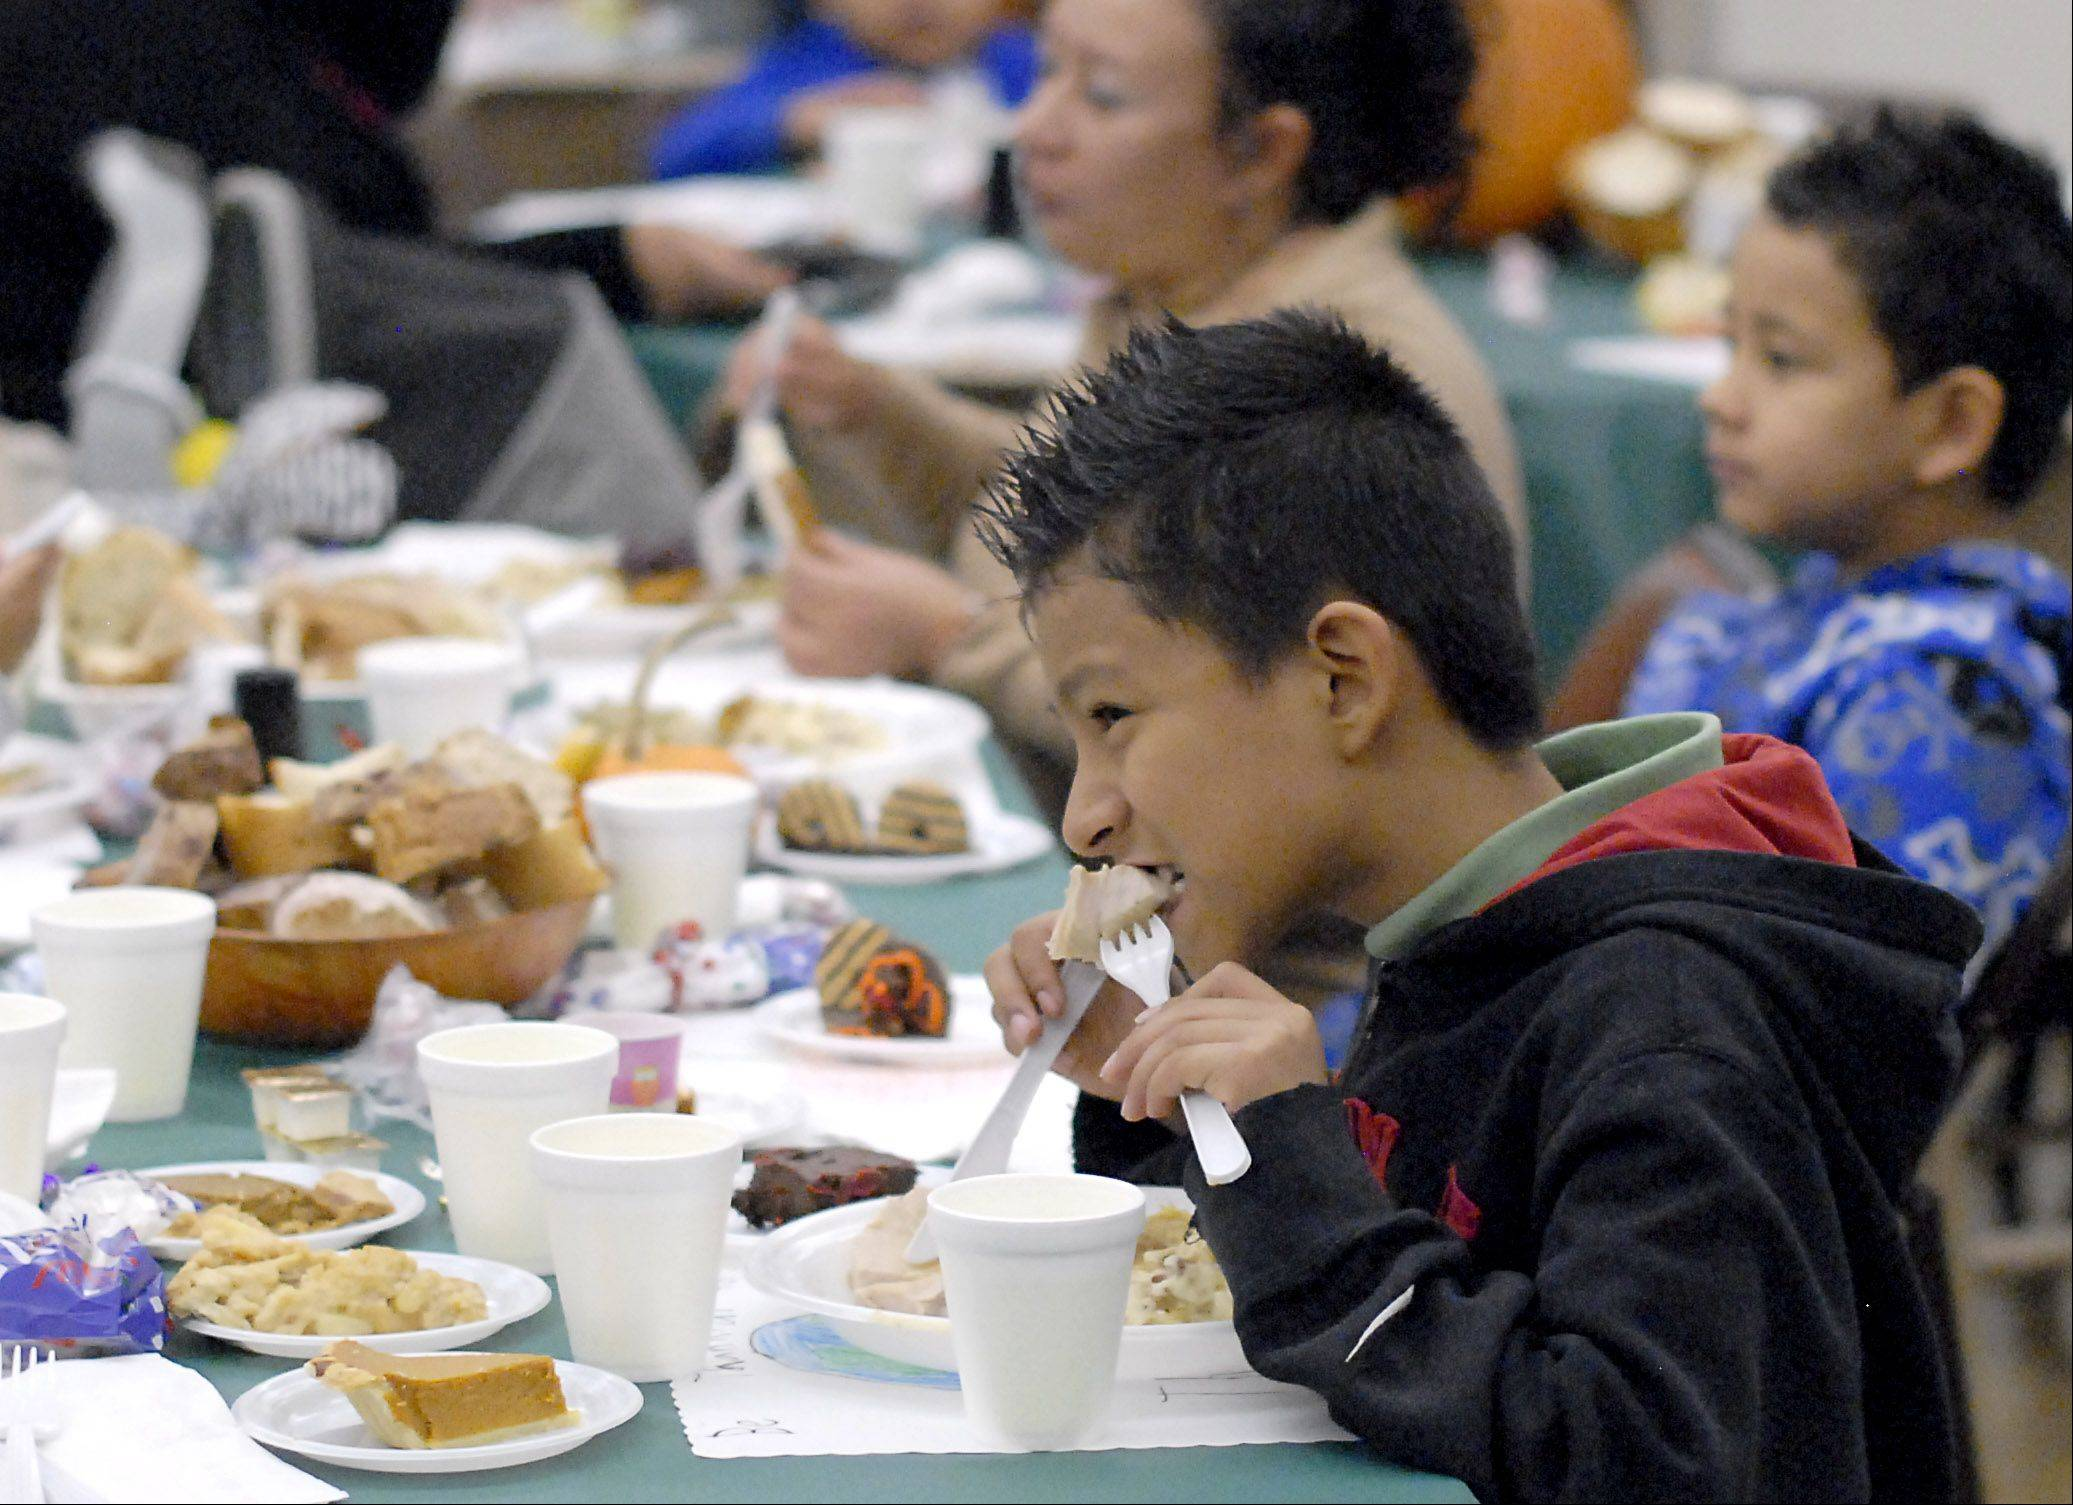 Daniel Lopez, 9, of Elgin chows down on a slice of turkey at Elgin's fourth annual community dinner held Thursday for the first time at the First United Methodist Church. This is the third year his family has attended the gathering.